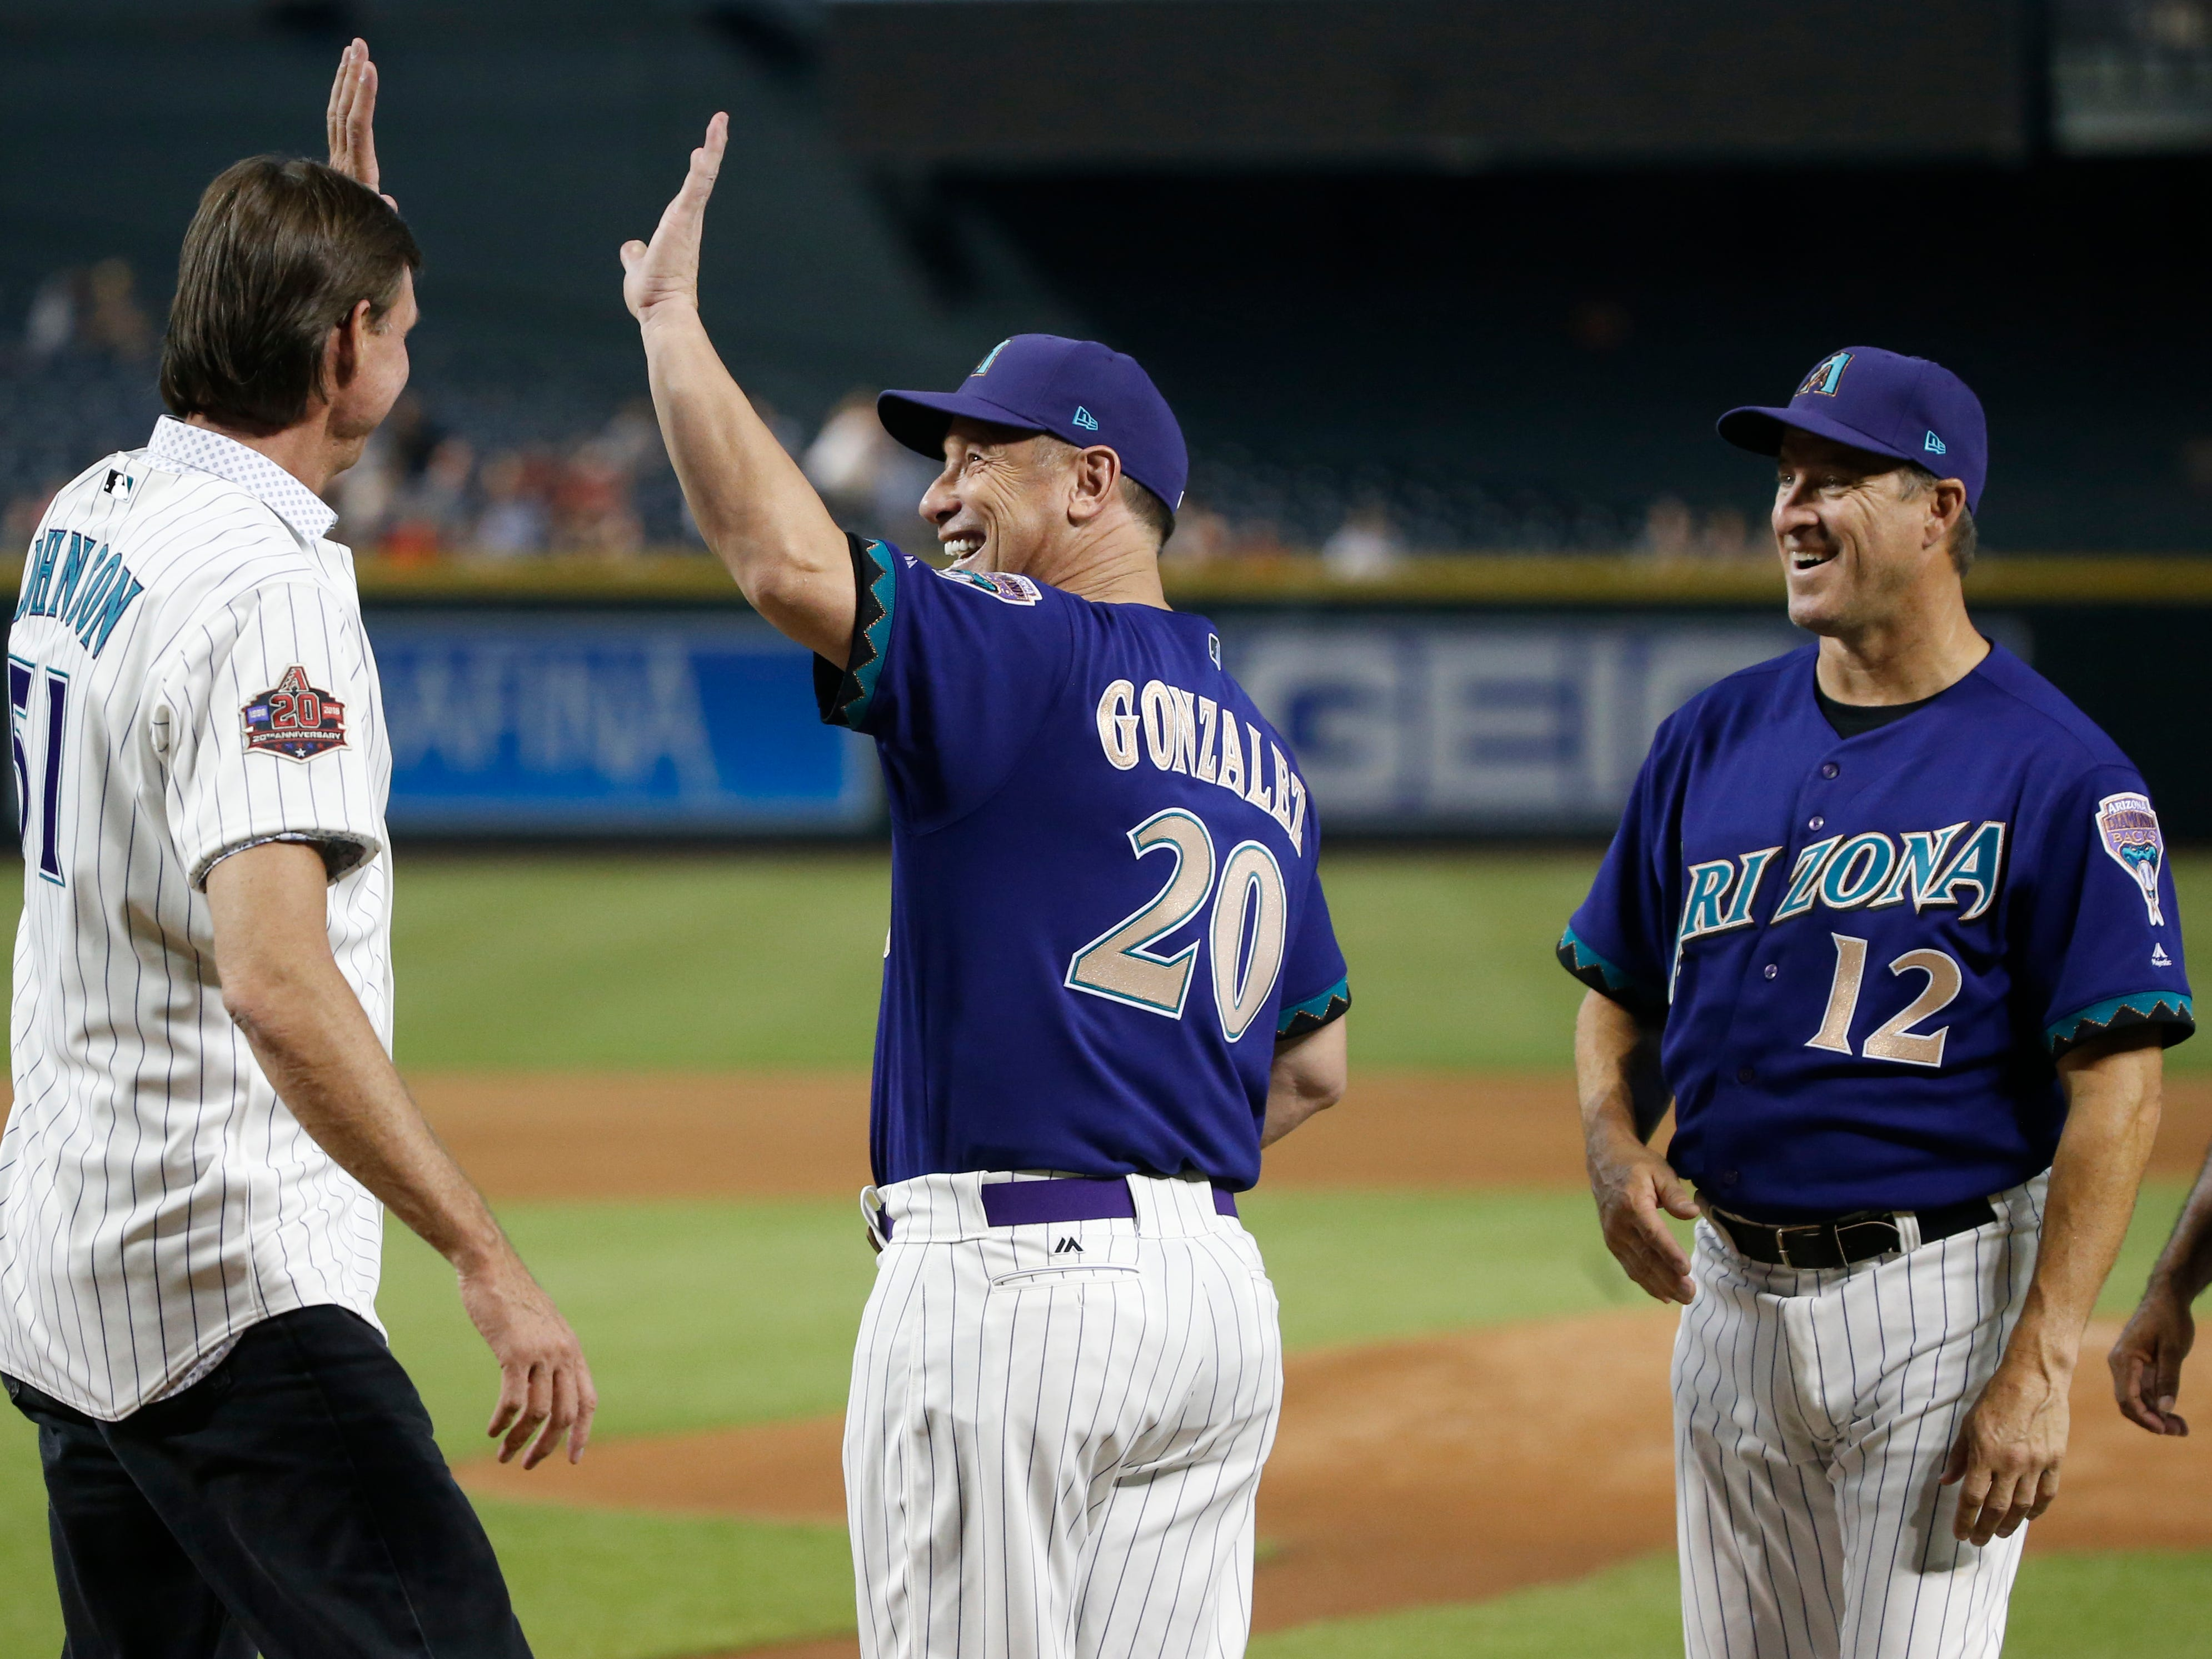 Diamondbacks Randy Johnson high-fives Luis Gonzalez (20) before the Alumni game at Chase Field in Phoenix, Ariz. on Aug. 4, 2018.